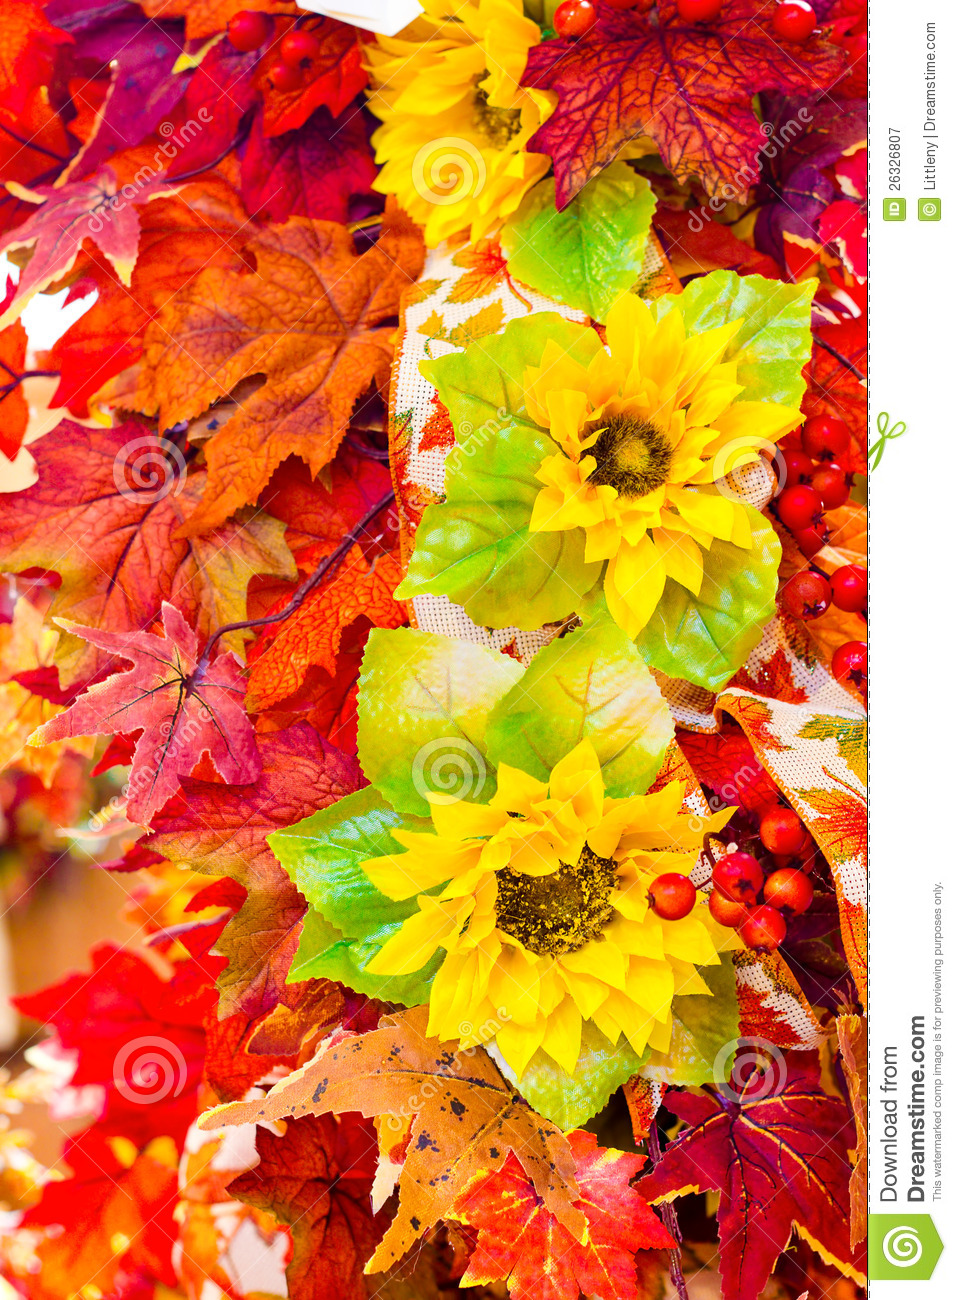 Free Desktop Wallpaper Fall Foliage Autumn Flowers And Leaves Stock Image Image Of Floral